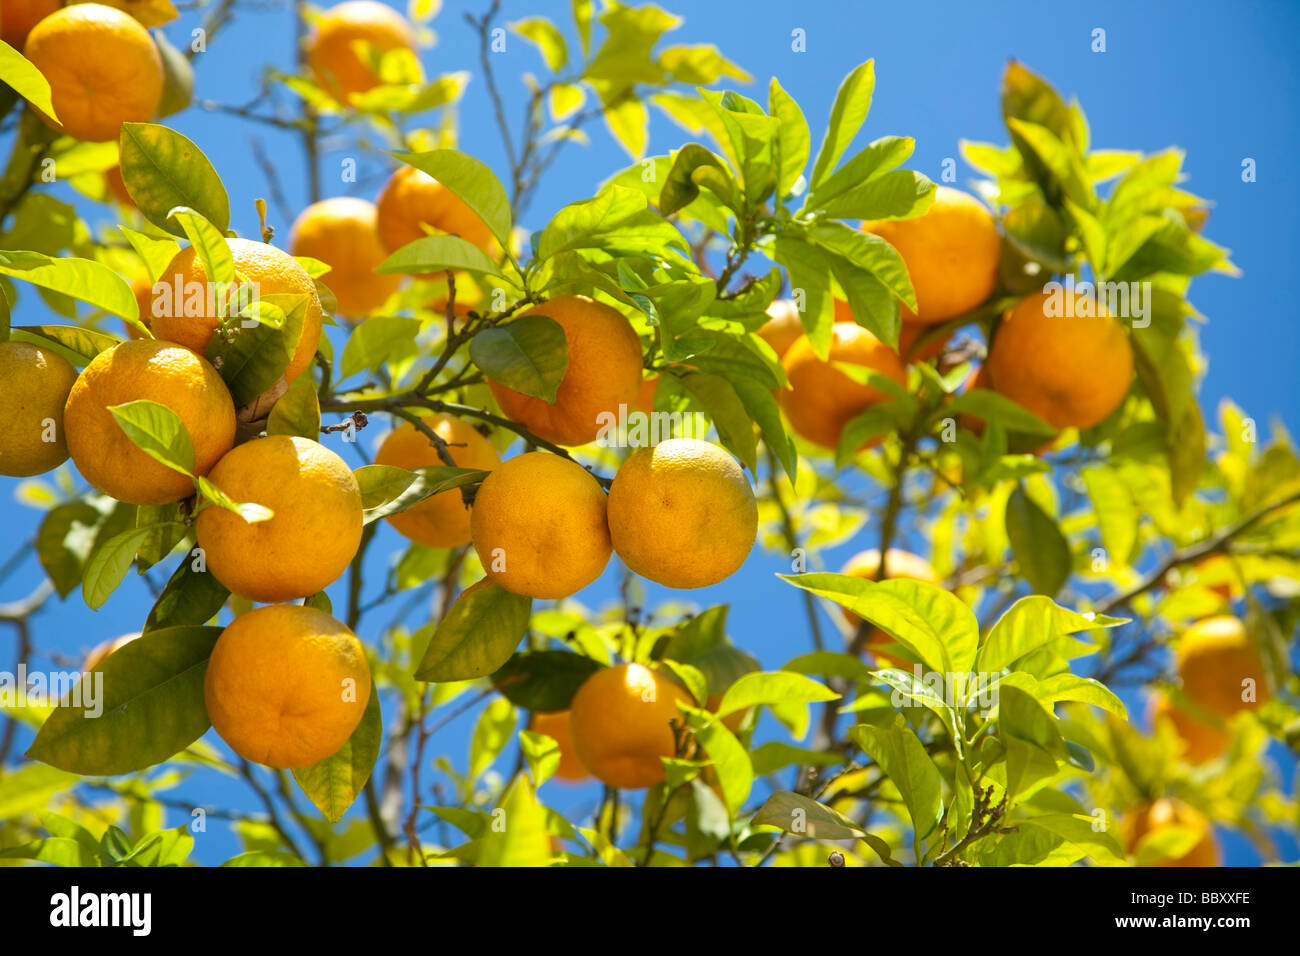 Close-up of organic Spanish Oranges Stock Photo